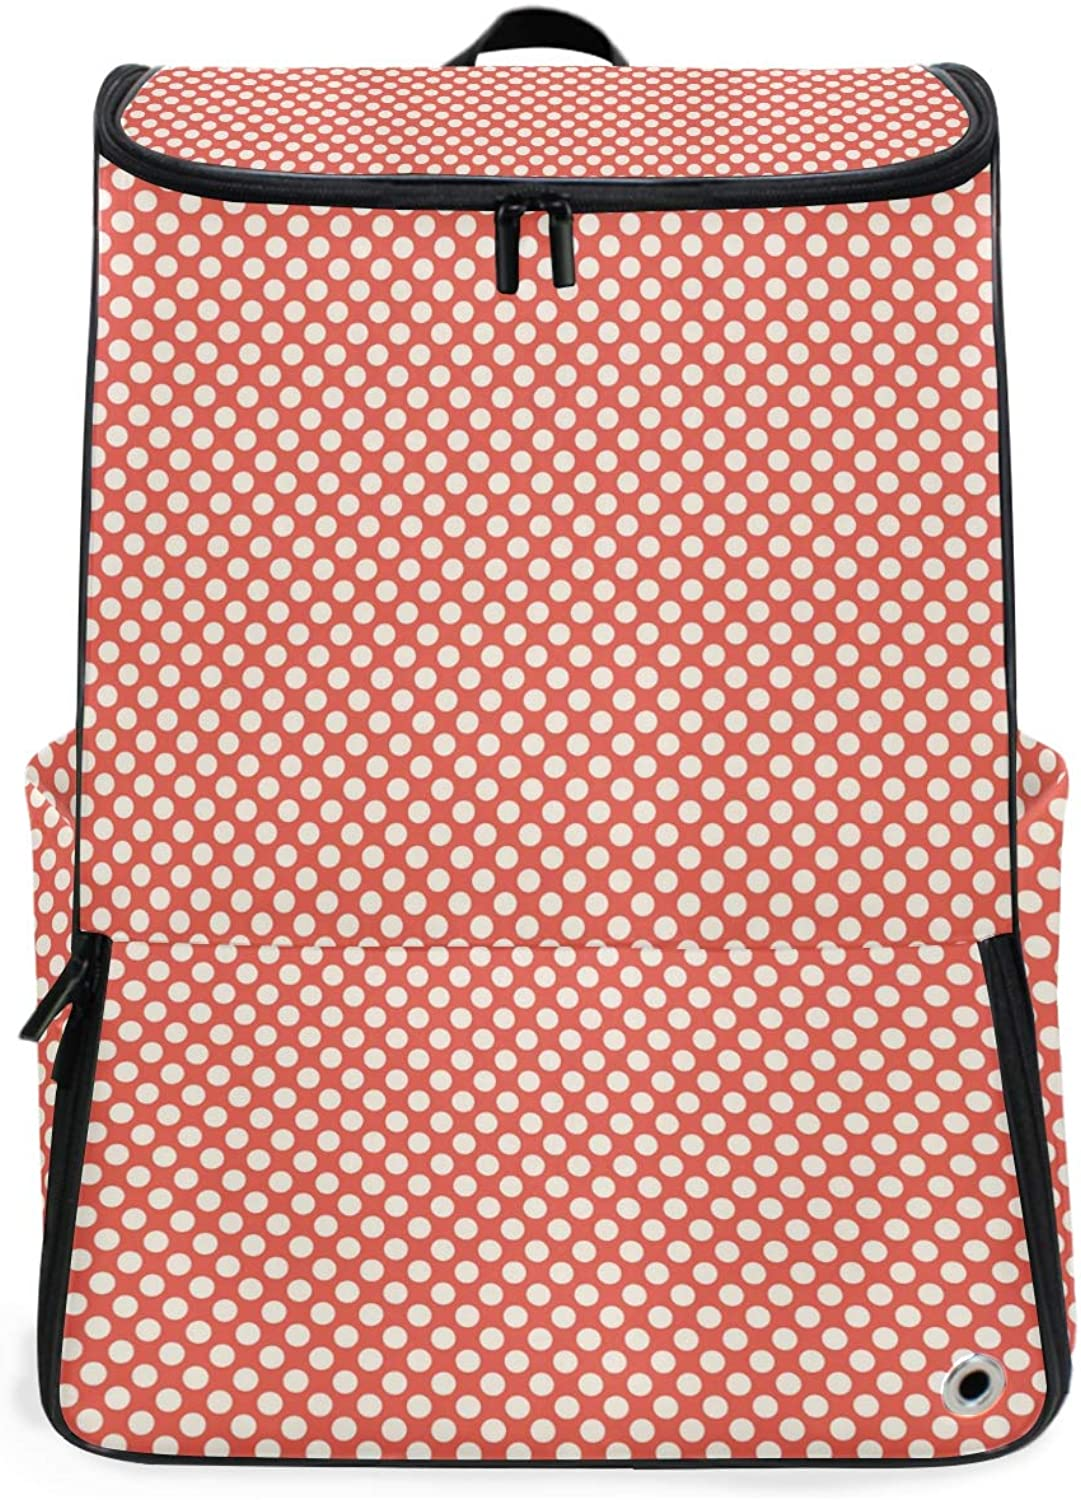 Backpack Rucksack Travel Daypack Polka Dots Simple Pattern Book Bag Casual Travel Waterproof